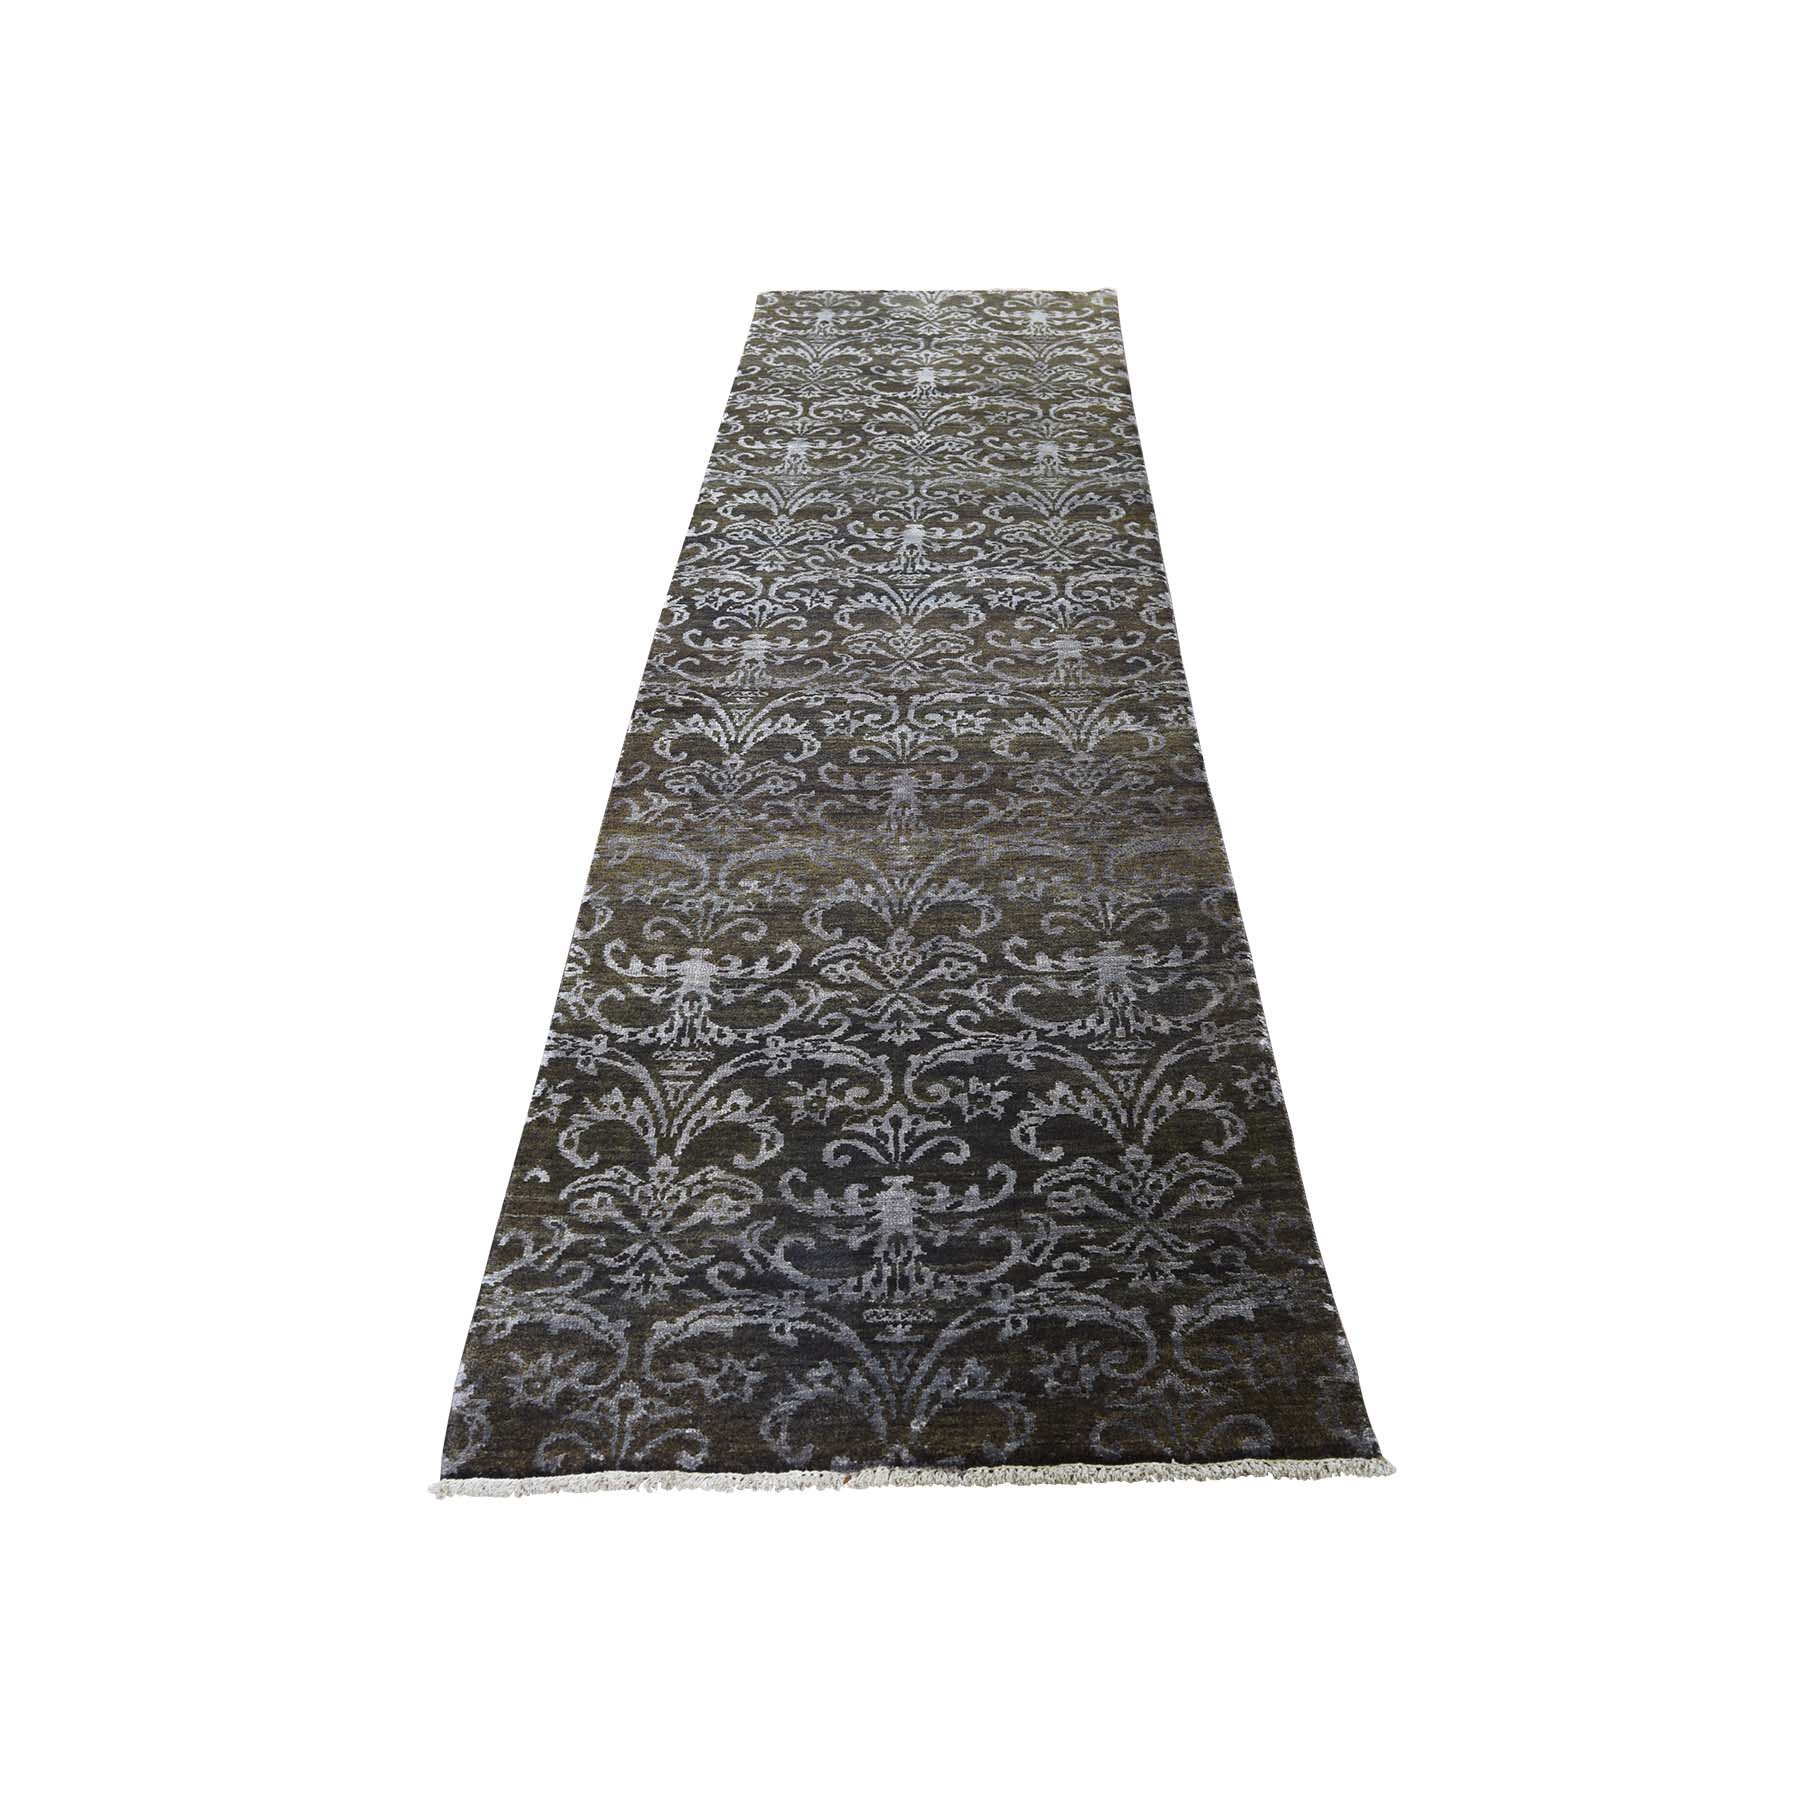 "2'4""x9'8"" Damask Tone on Tone Wool and Silk Runner Handmade Oriental Rug"